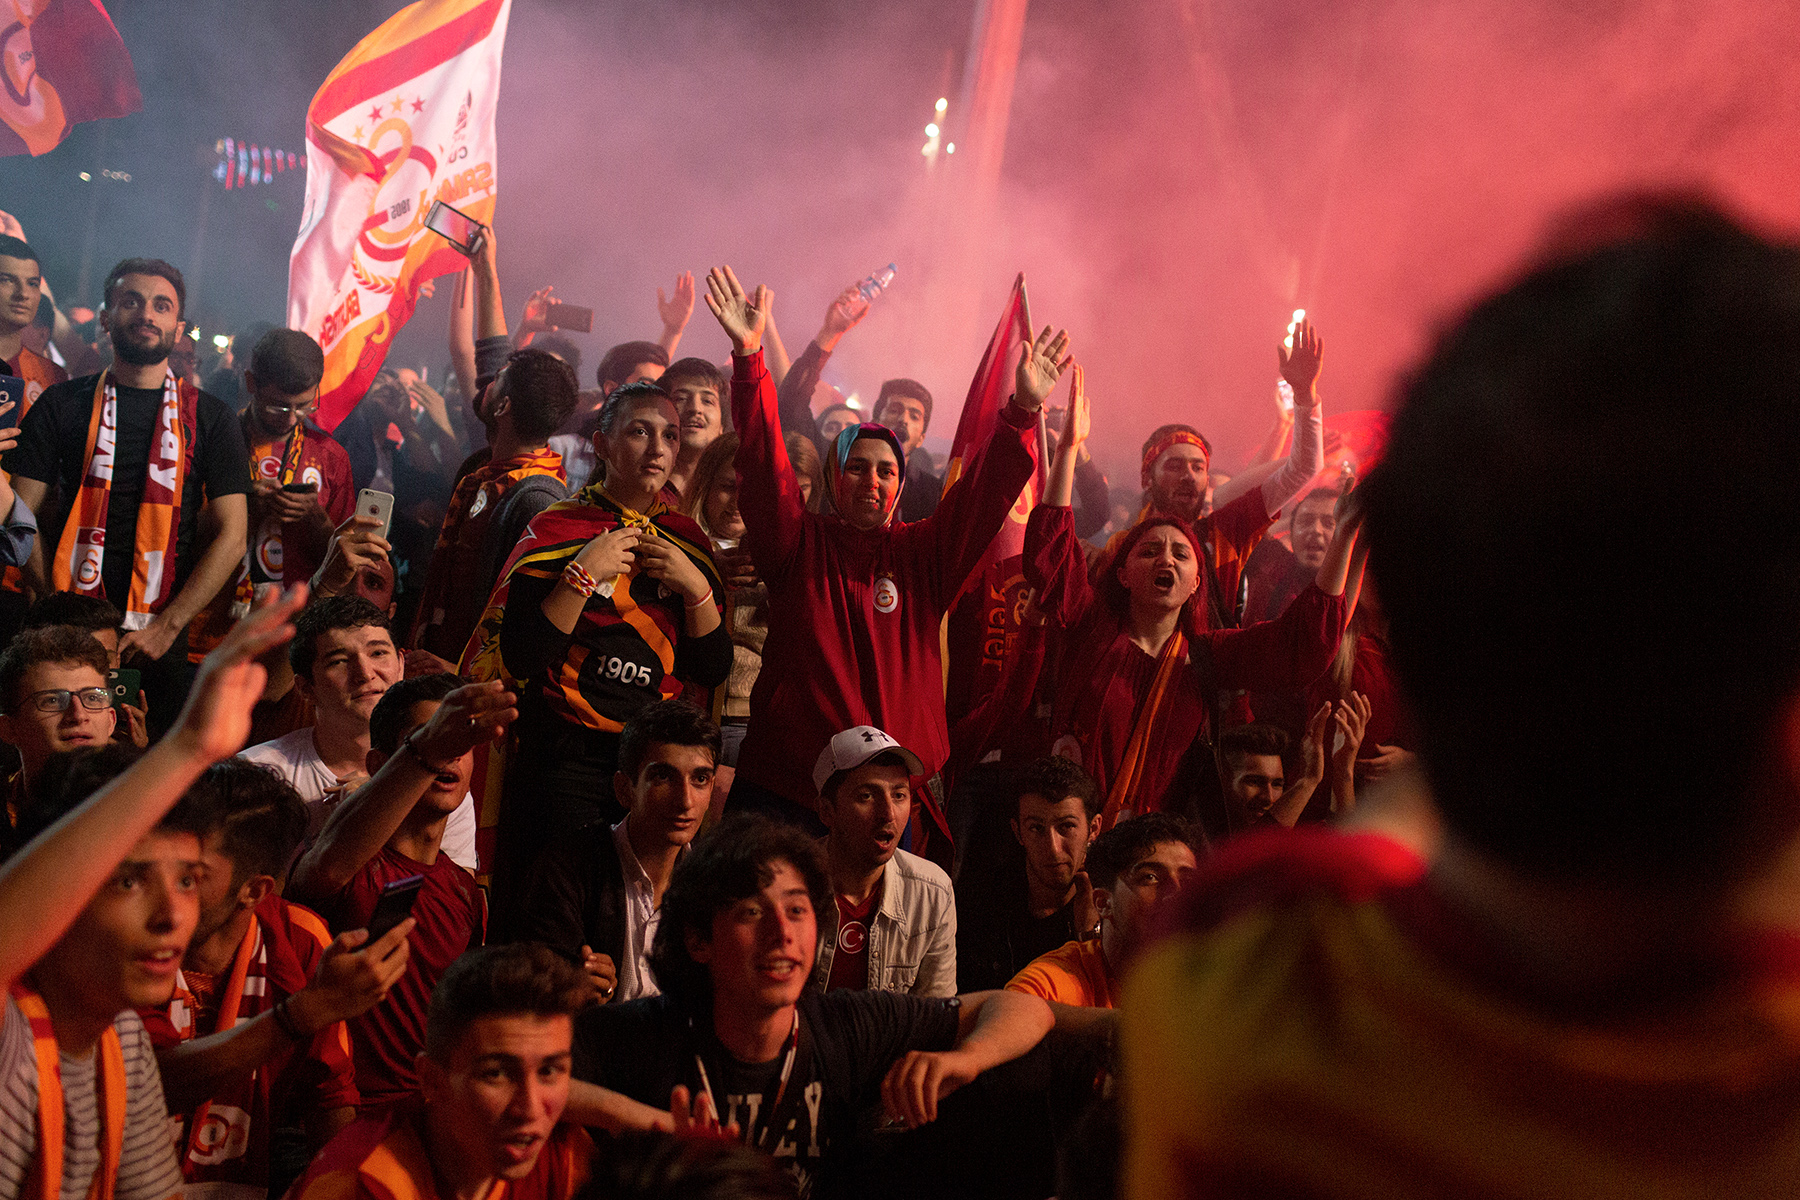 Turkey, Istanbul. May 19, 2018. Supporters of Galatasaray gather in the city center to celebrate the championship title in the Turkish Super League.